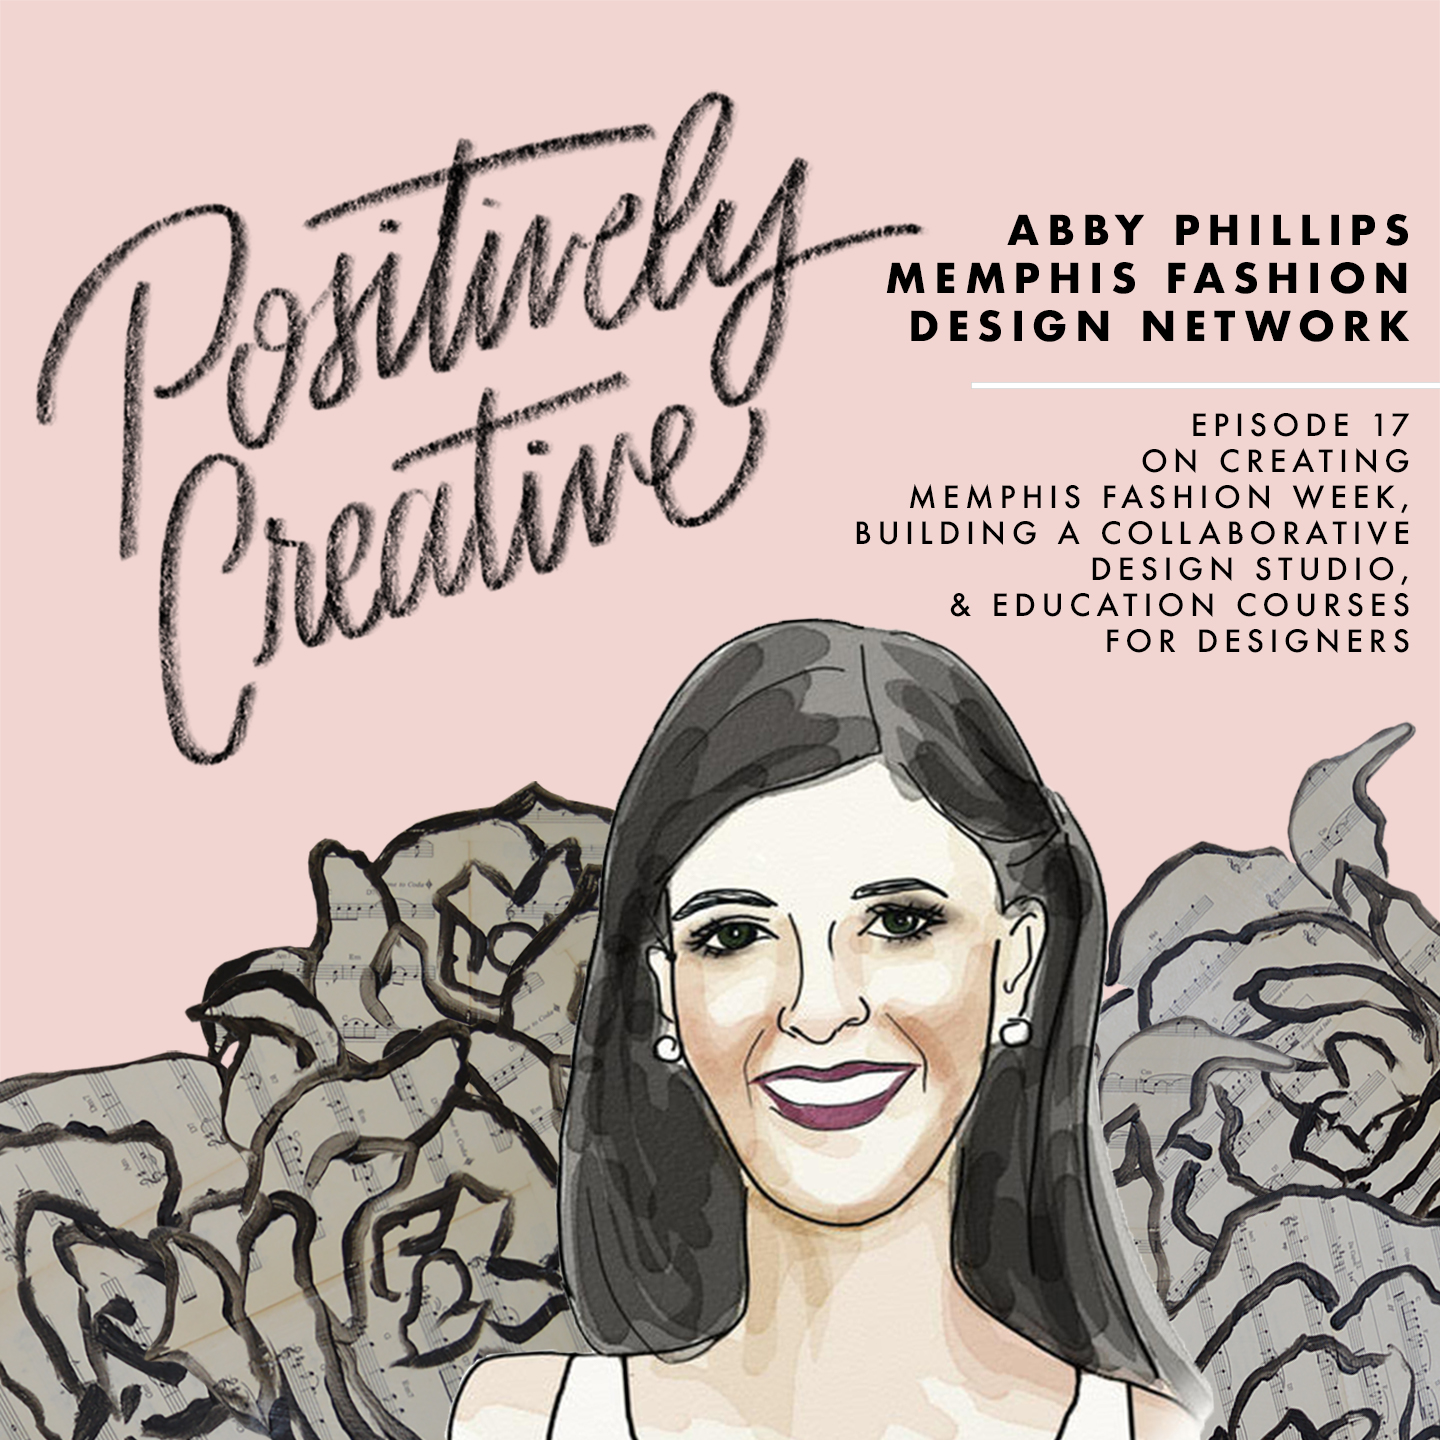 Artwork for 017 - Abby Phillips of Memphis Fashion Design Network on Creating Memphis Fashion Week,  Building a Collaborative Design Studio, & Education Courses for Designers